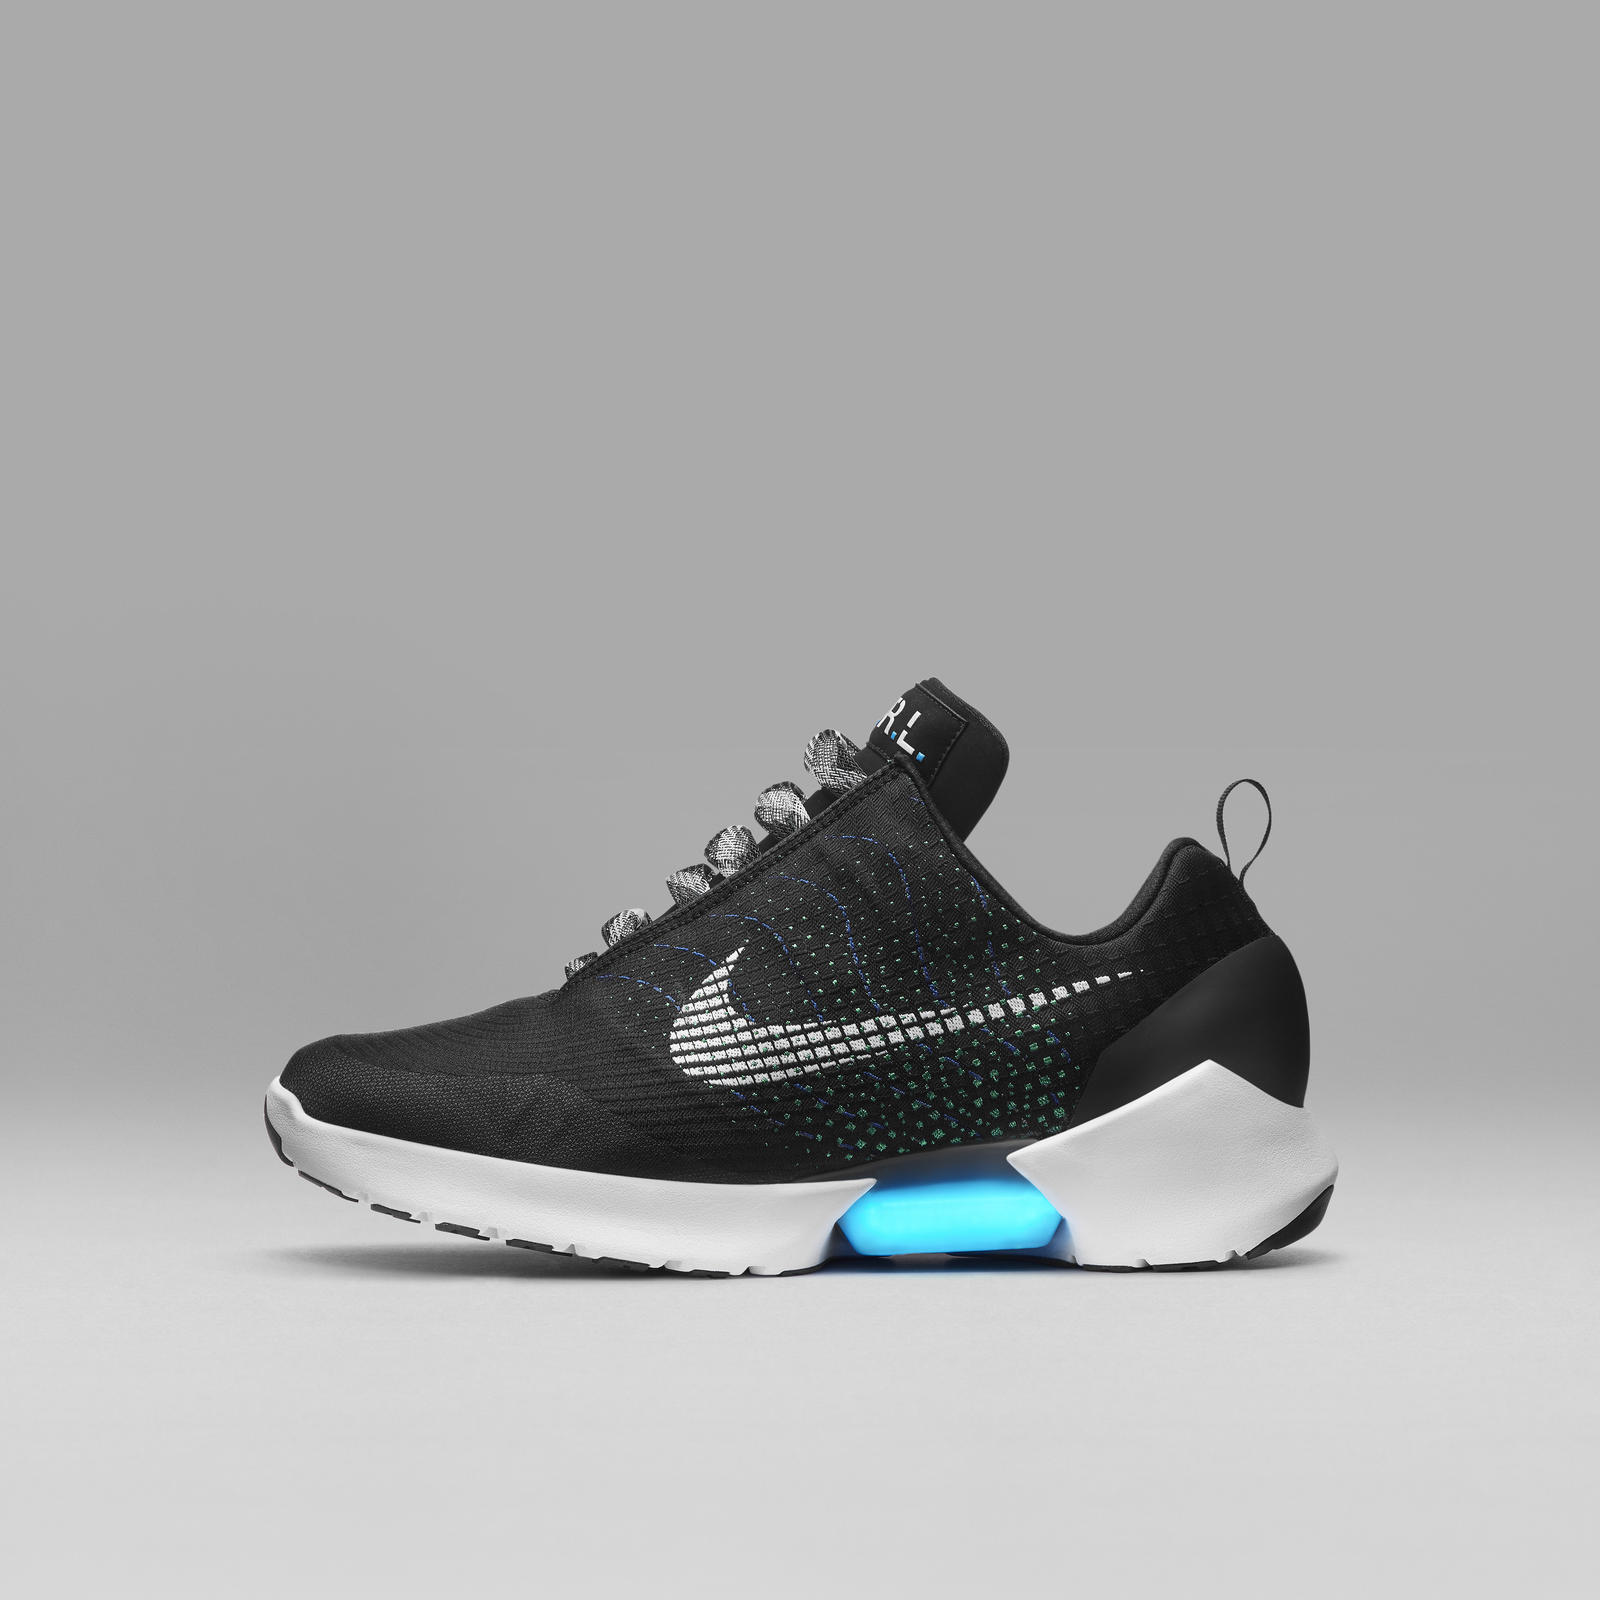 Nike Innovation 2016 Products - Nike News 7485dc47f8